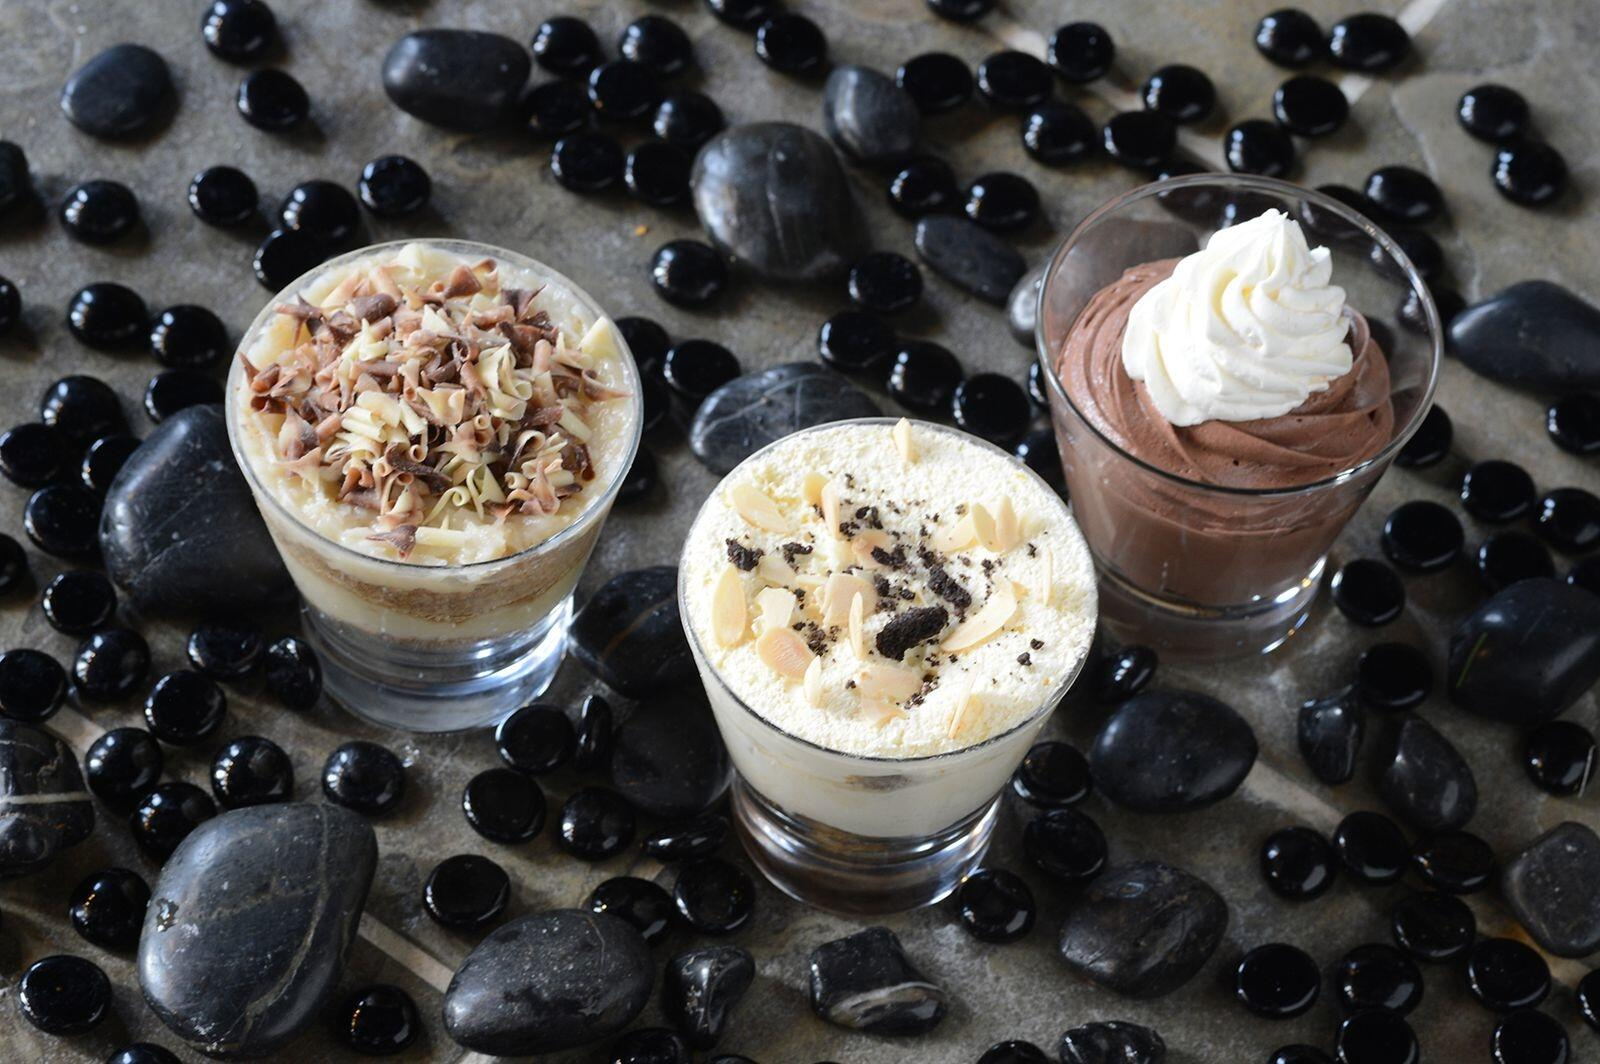 Three dessert shooters artfully surrounded by black pebbles